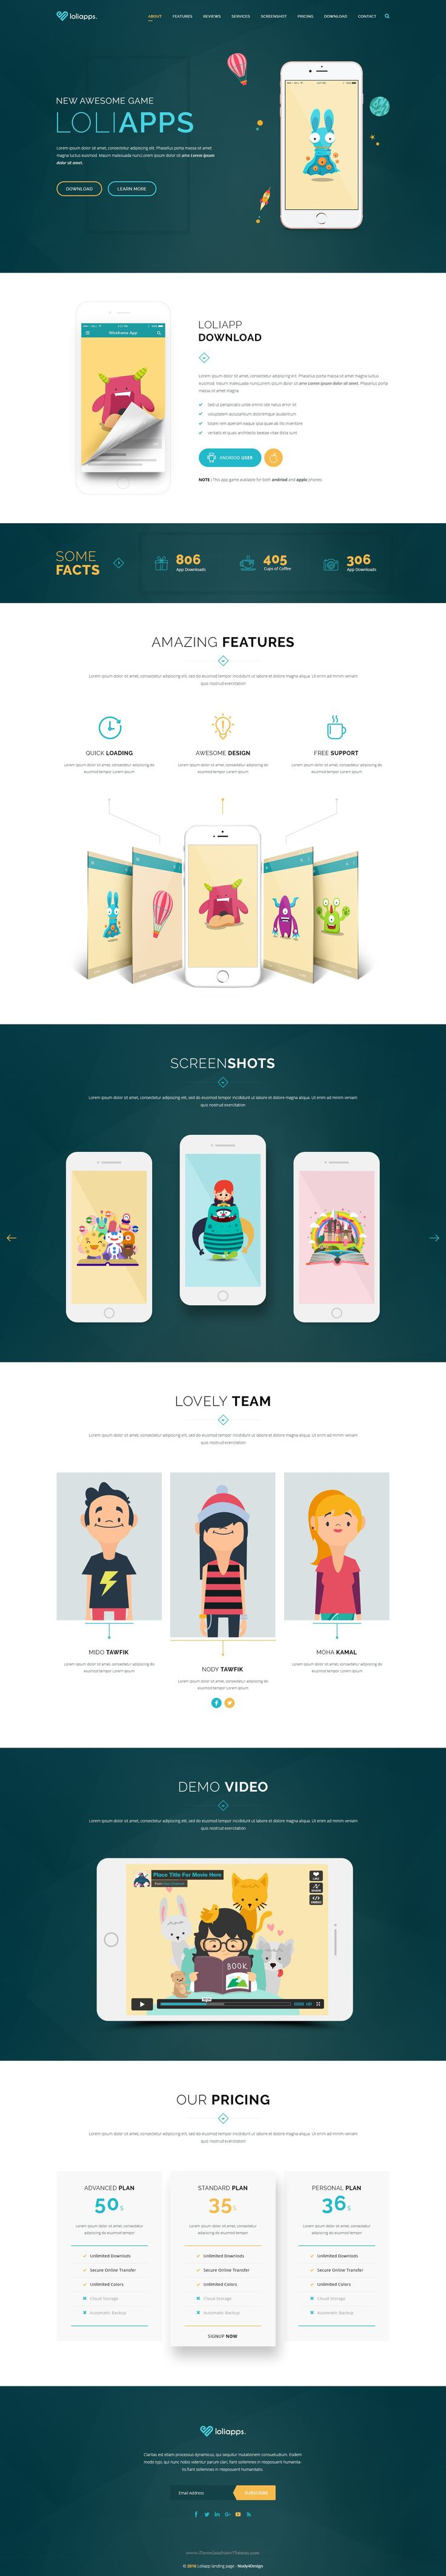 LoliApps - Landing Page PSD Template comes with 2 stunning homepage layouts. #app #onepage #website